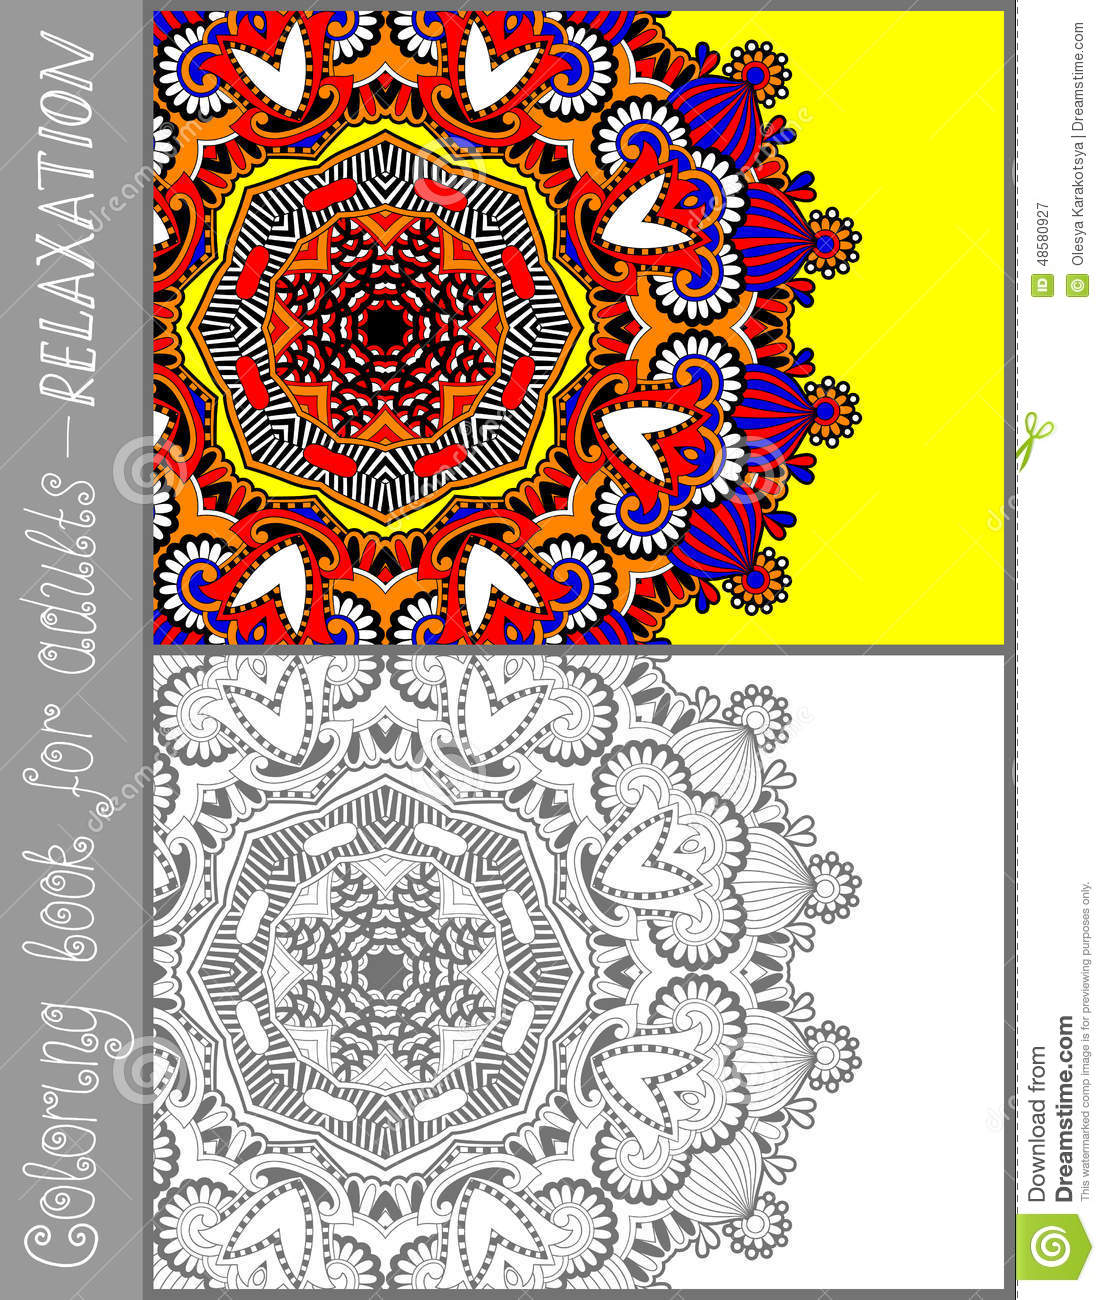 Flower designs coloring book - Coloring Book Page For Adults Flower Paisley